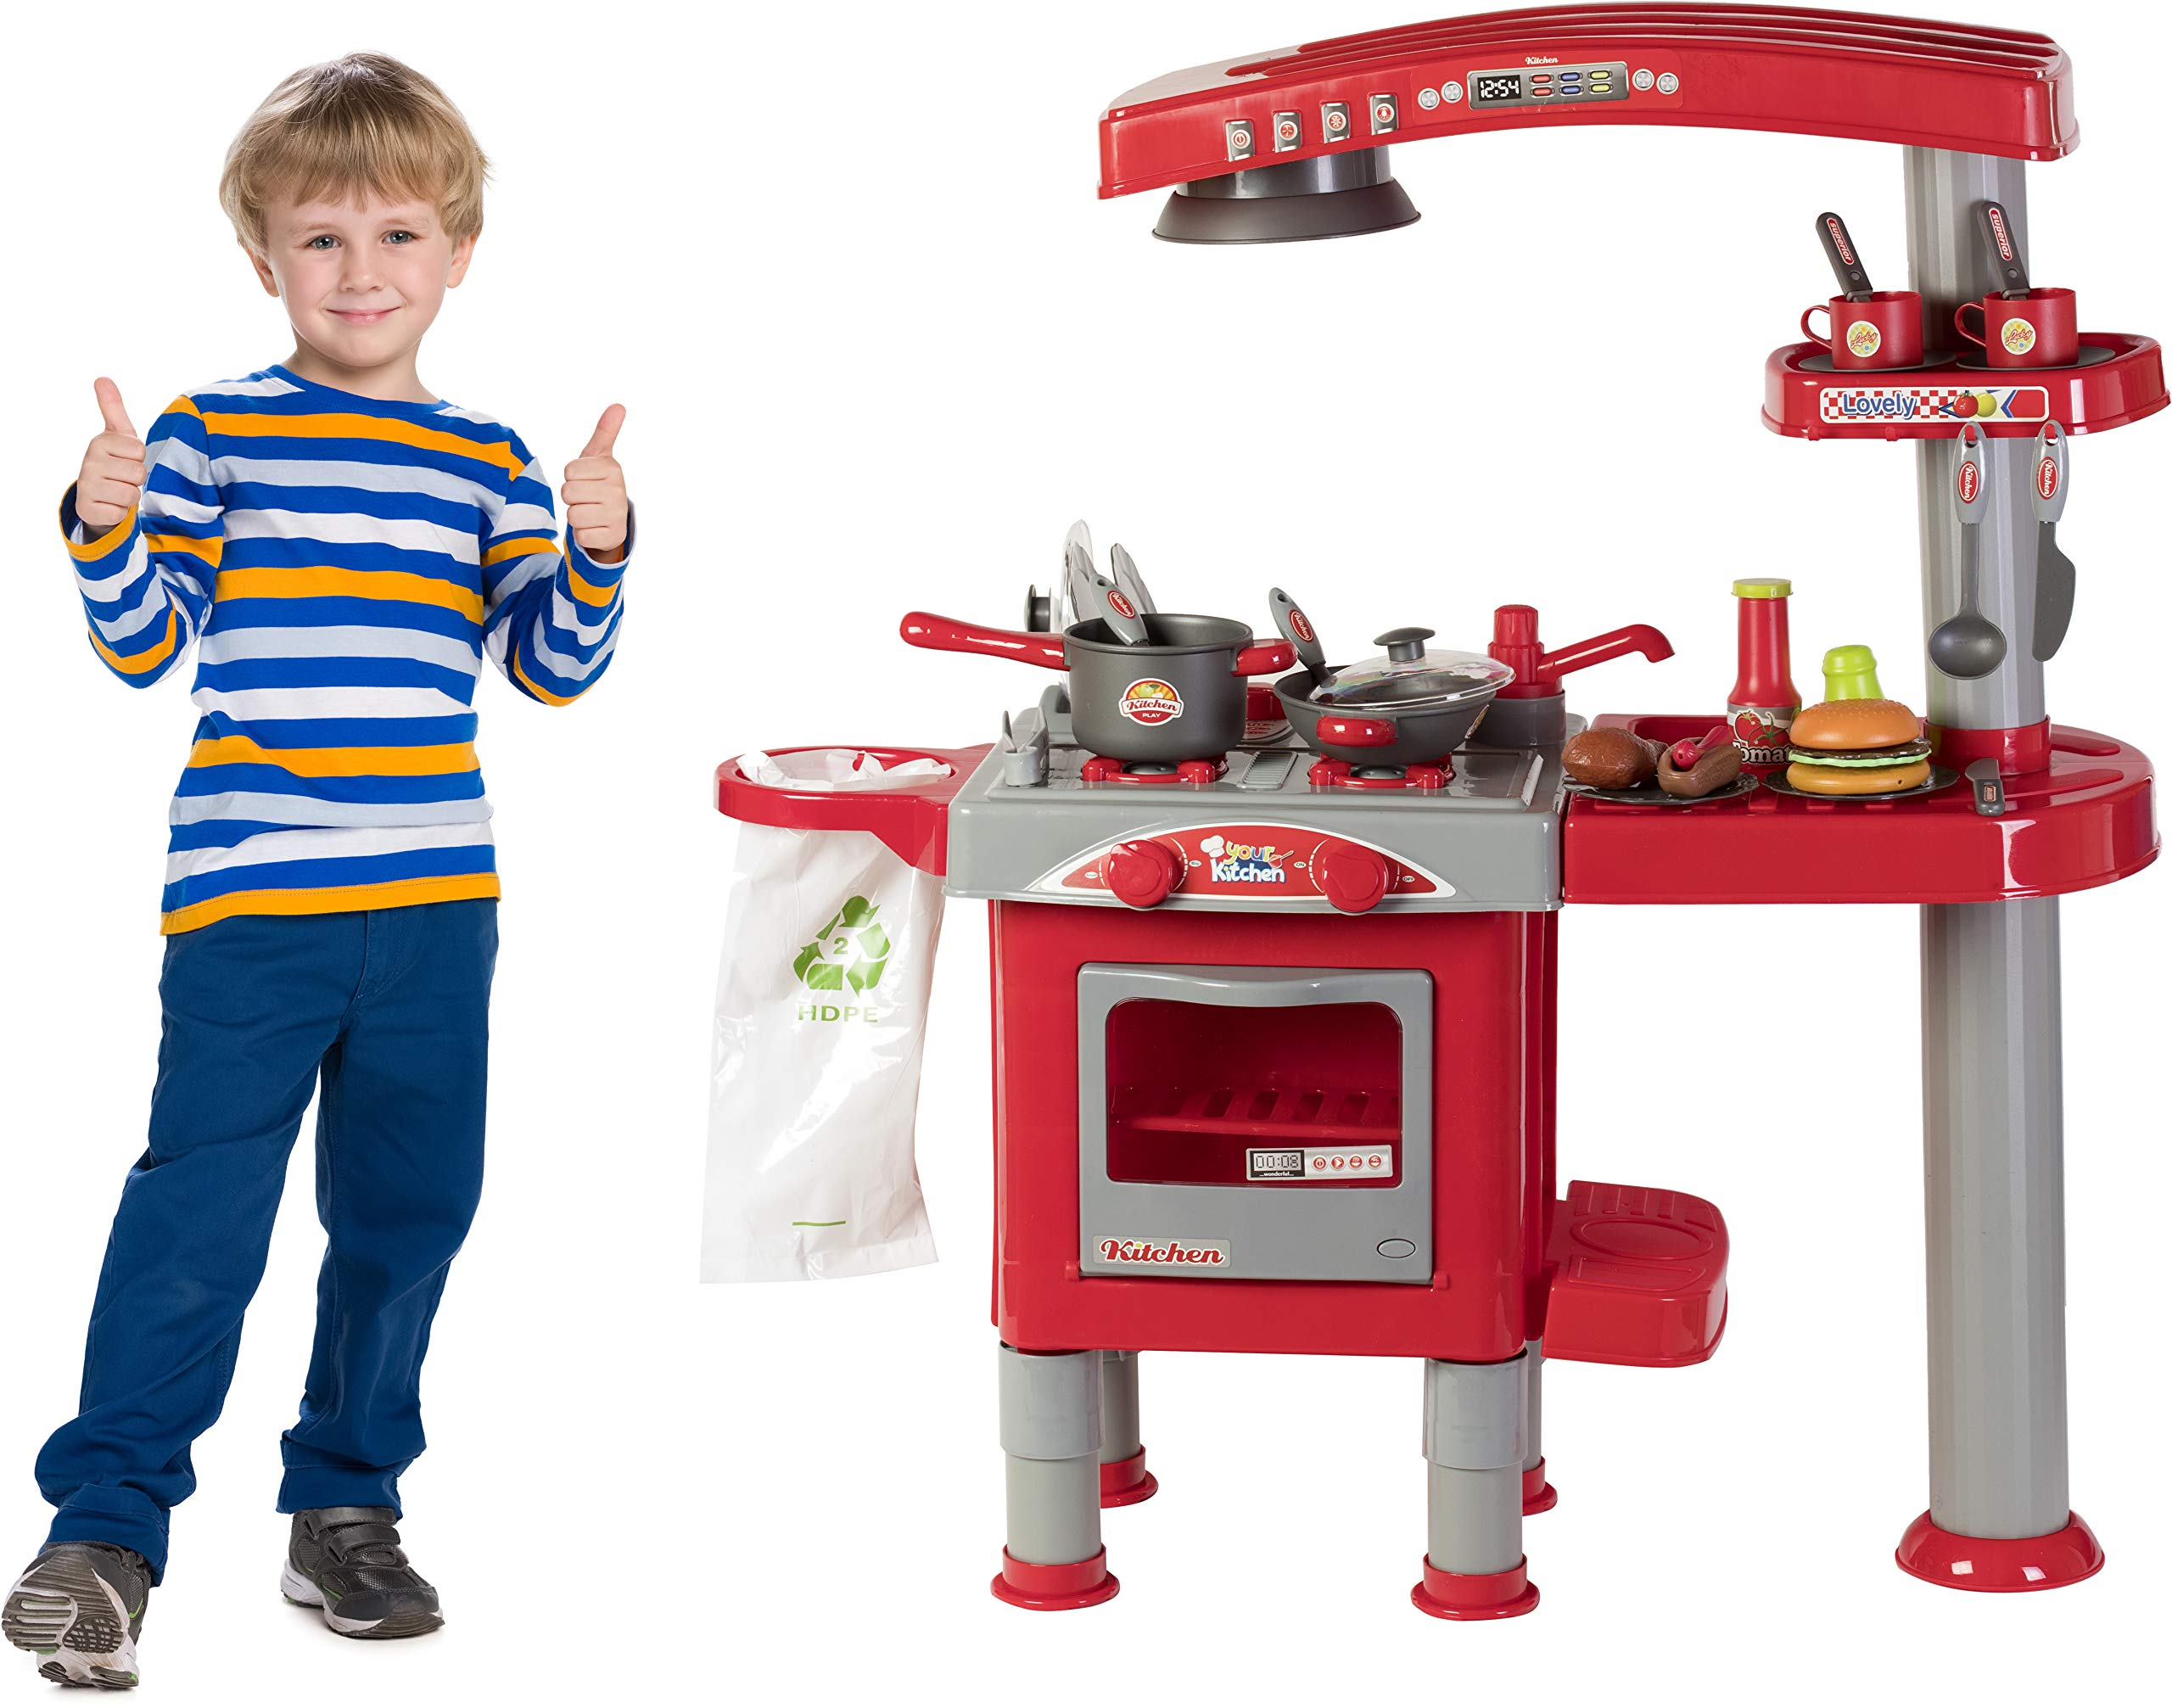 Kitchen Grill Boys Playset Oven Stove,Pots & Pans, Cups, Utensils & Tools. Make Sandwiches, Hot Dogs & More Like a Pro